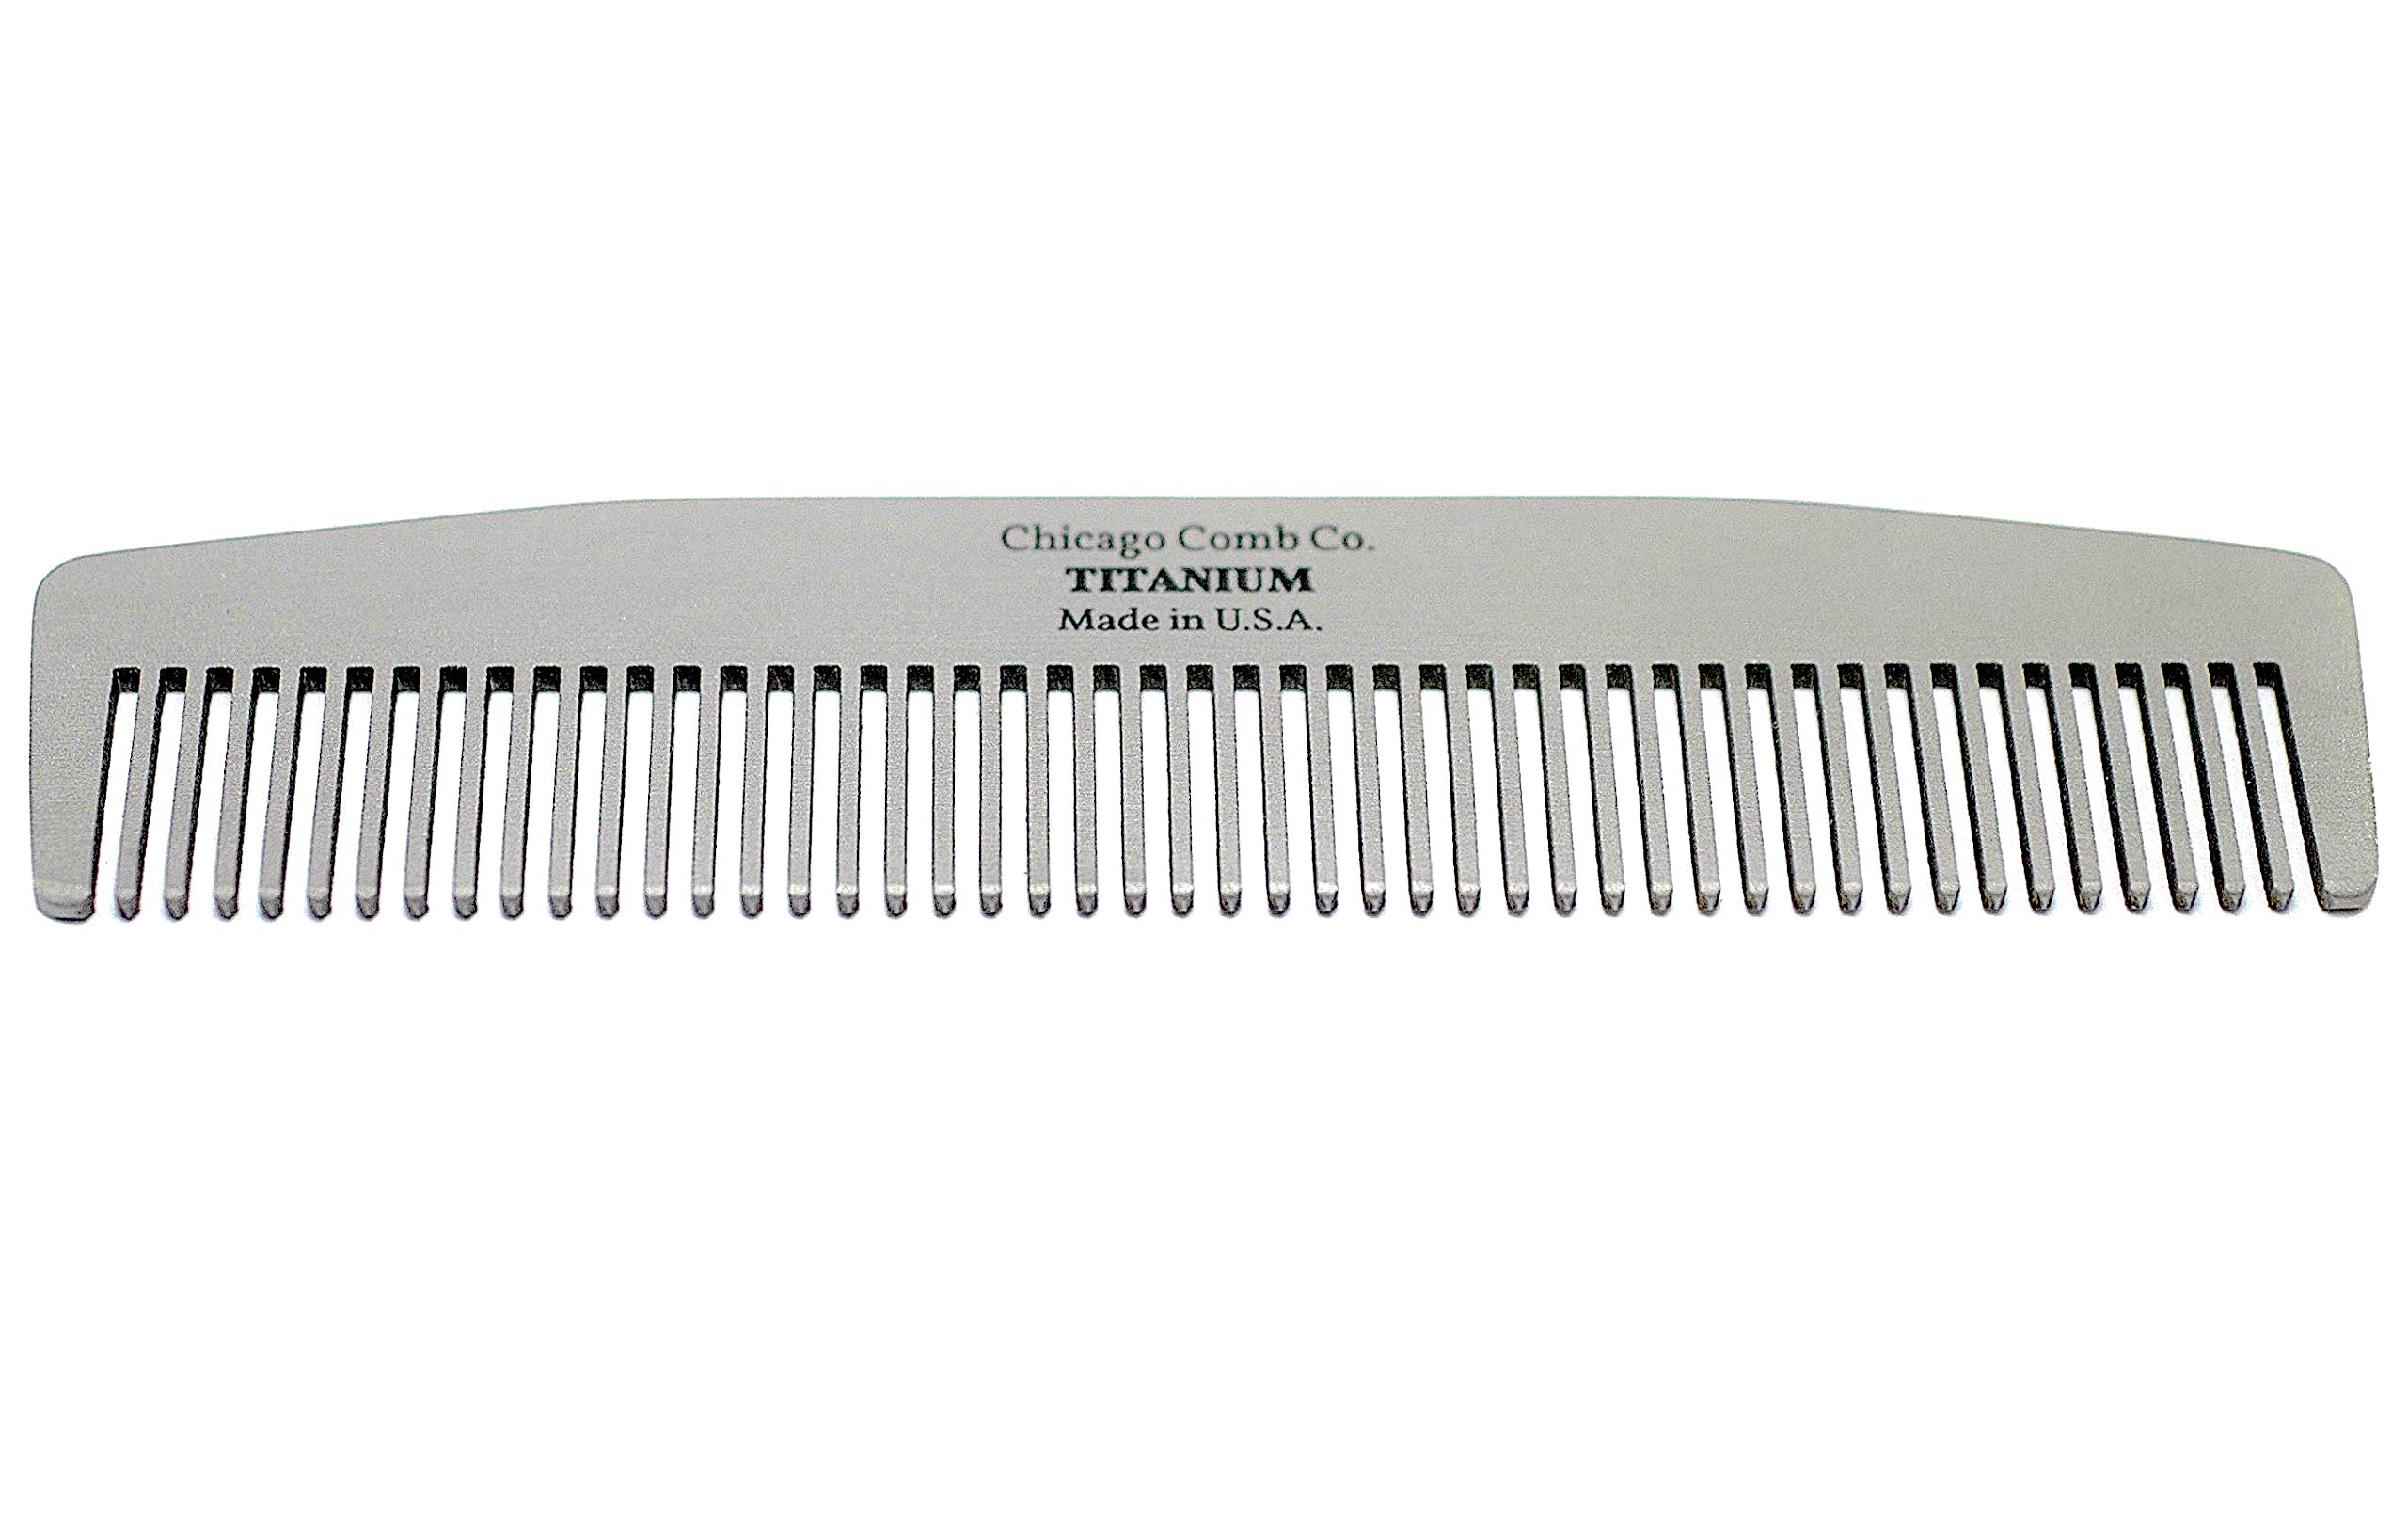 Chicago Comb Model No. 3 Titanium, Made in USA, Ultra-Smooth, Strong, Light, Anti-Static, 5.5 in. (14 cm) Long, Medium-Fine Tines, Ultimate Daily Use, Pocket, Travel Comb, Pure American Titanium